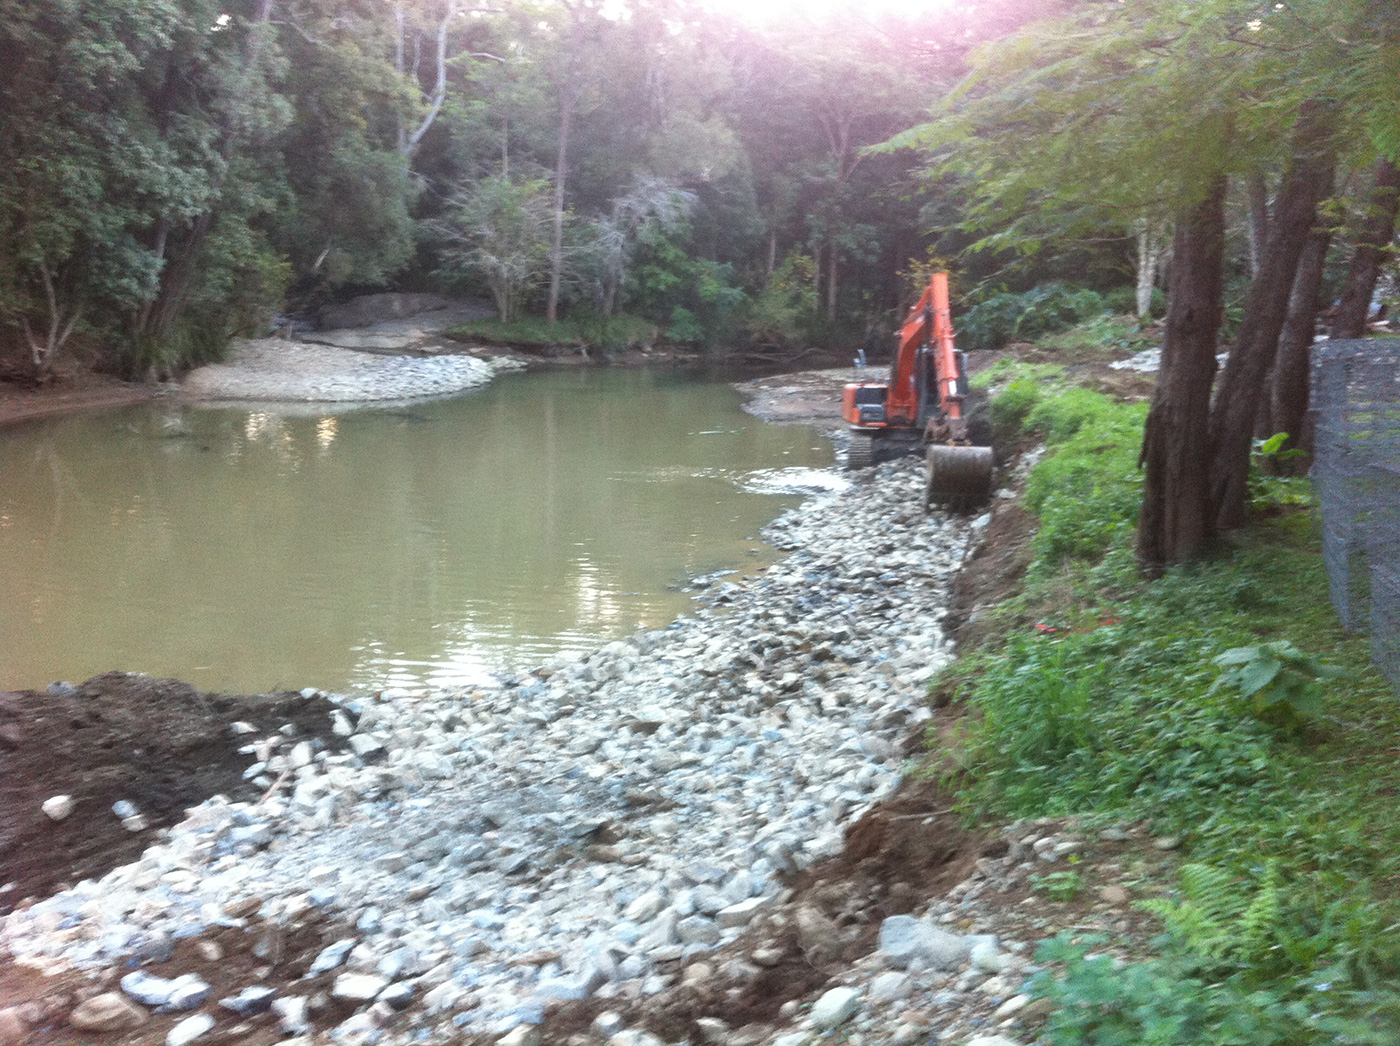 Retaining Wall To Prevent Erosion